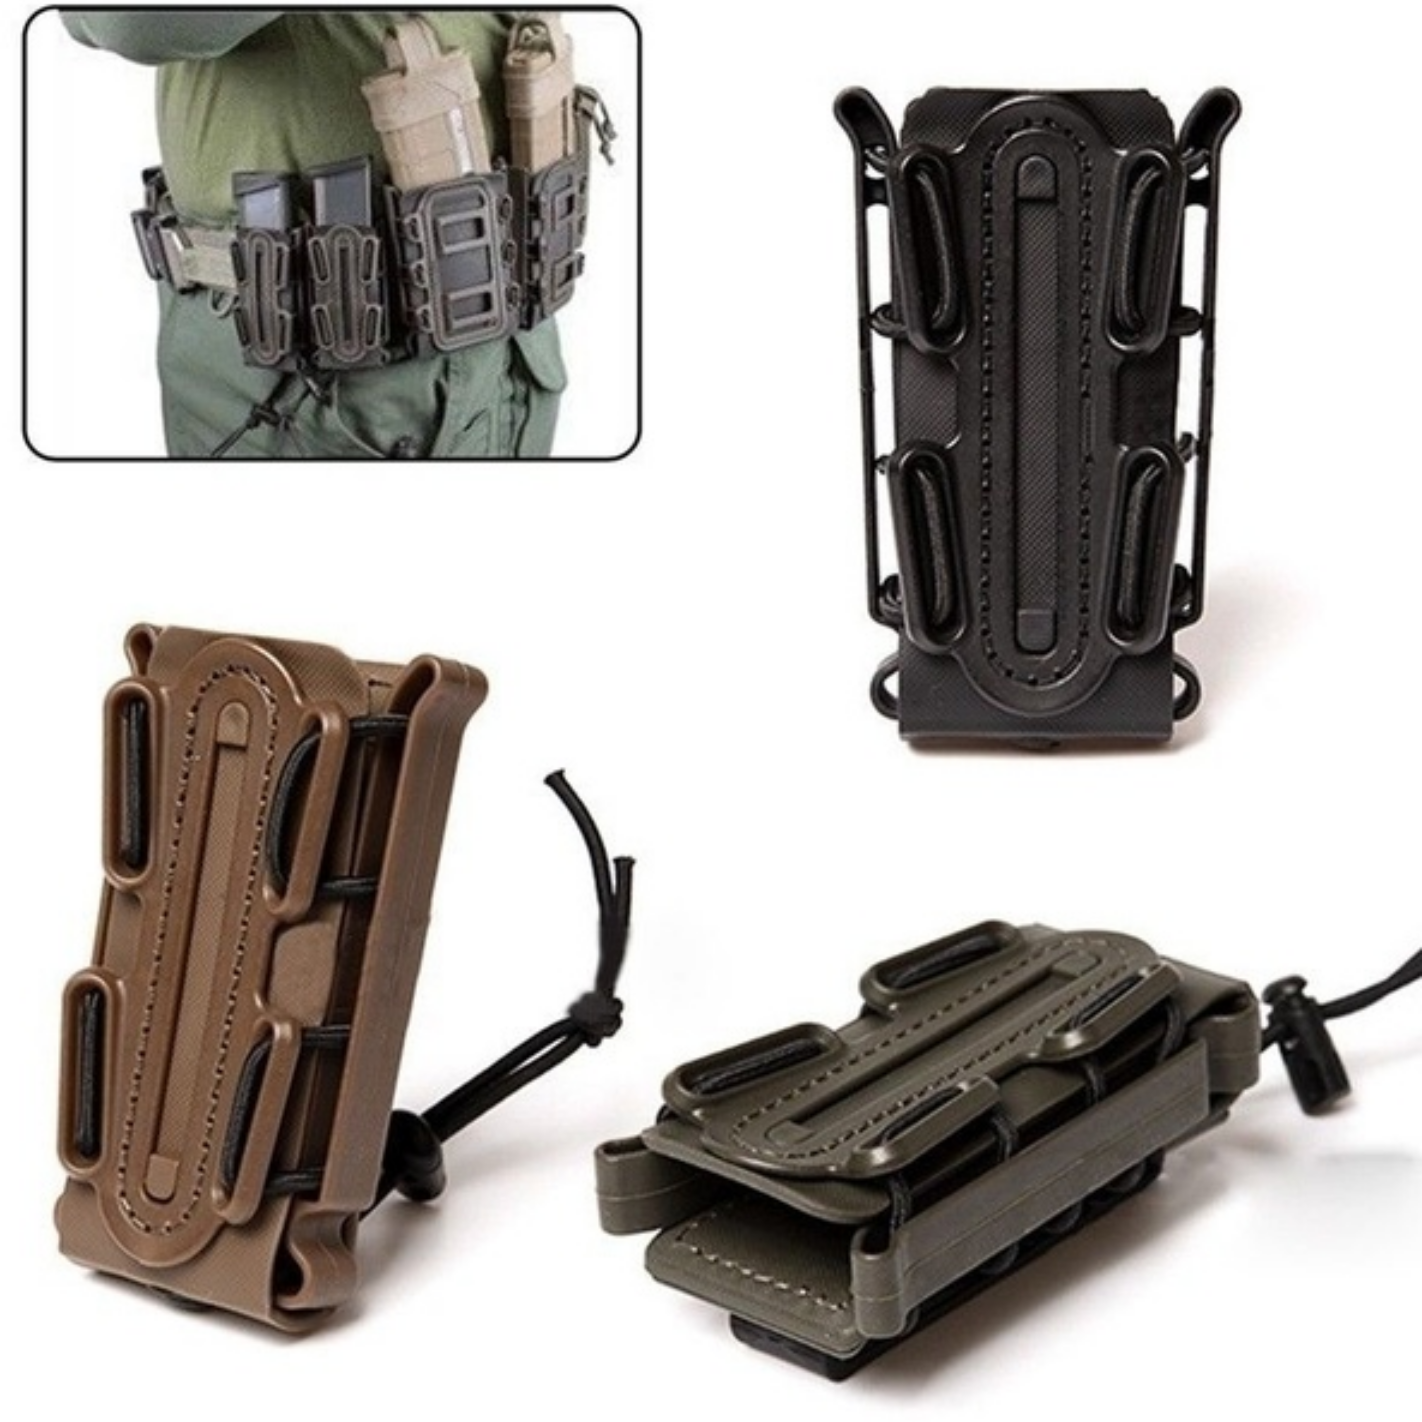 Adjustable mag pouch ... 9mm